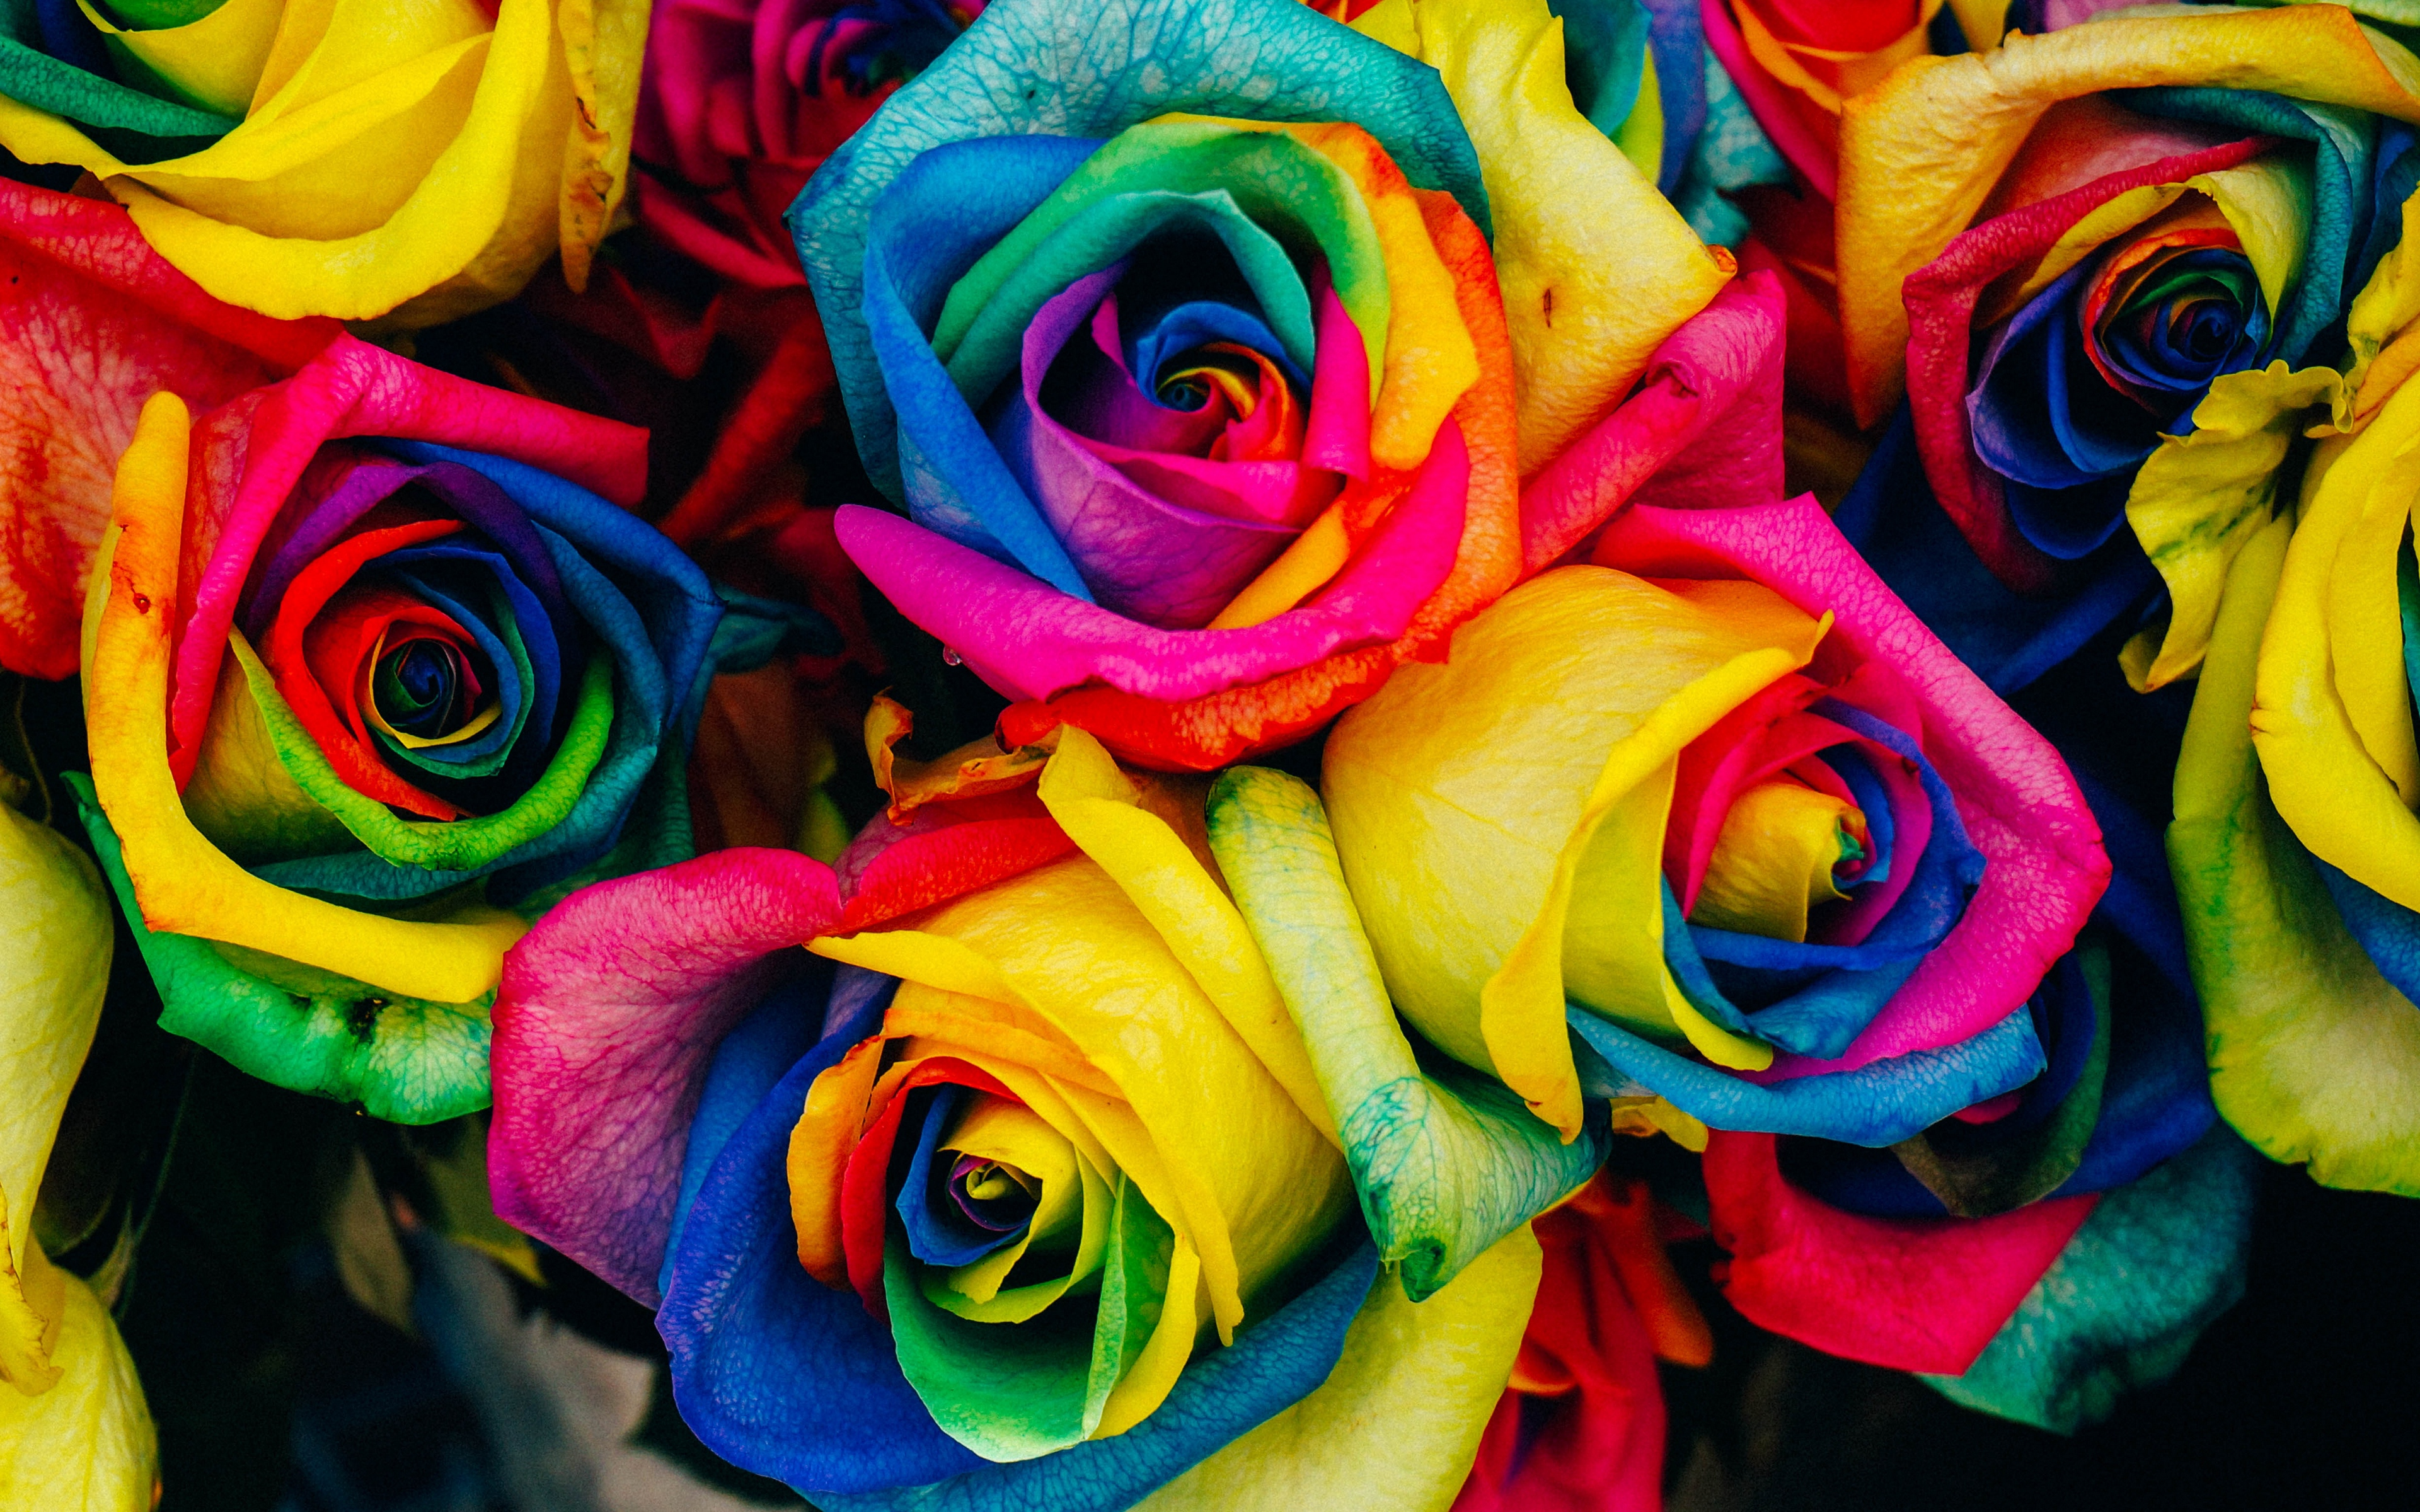 Colorful Roses Wallpaper 4k Ultra Hd Id4046